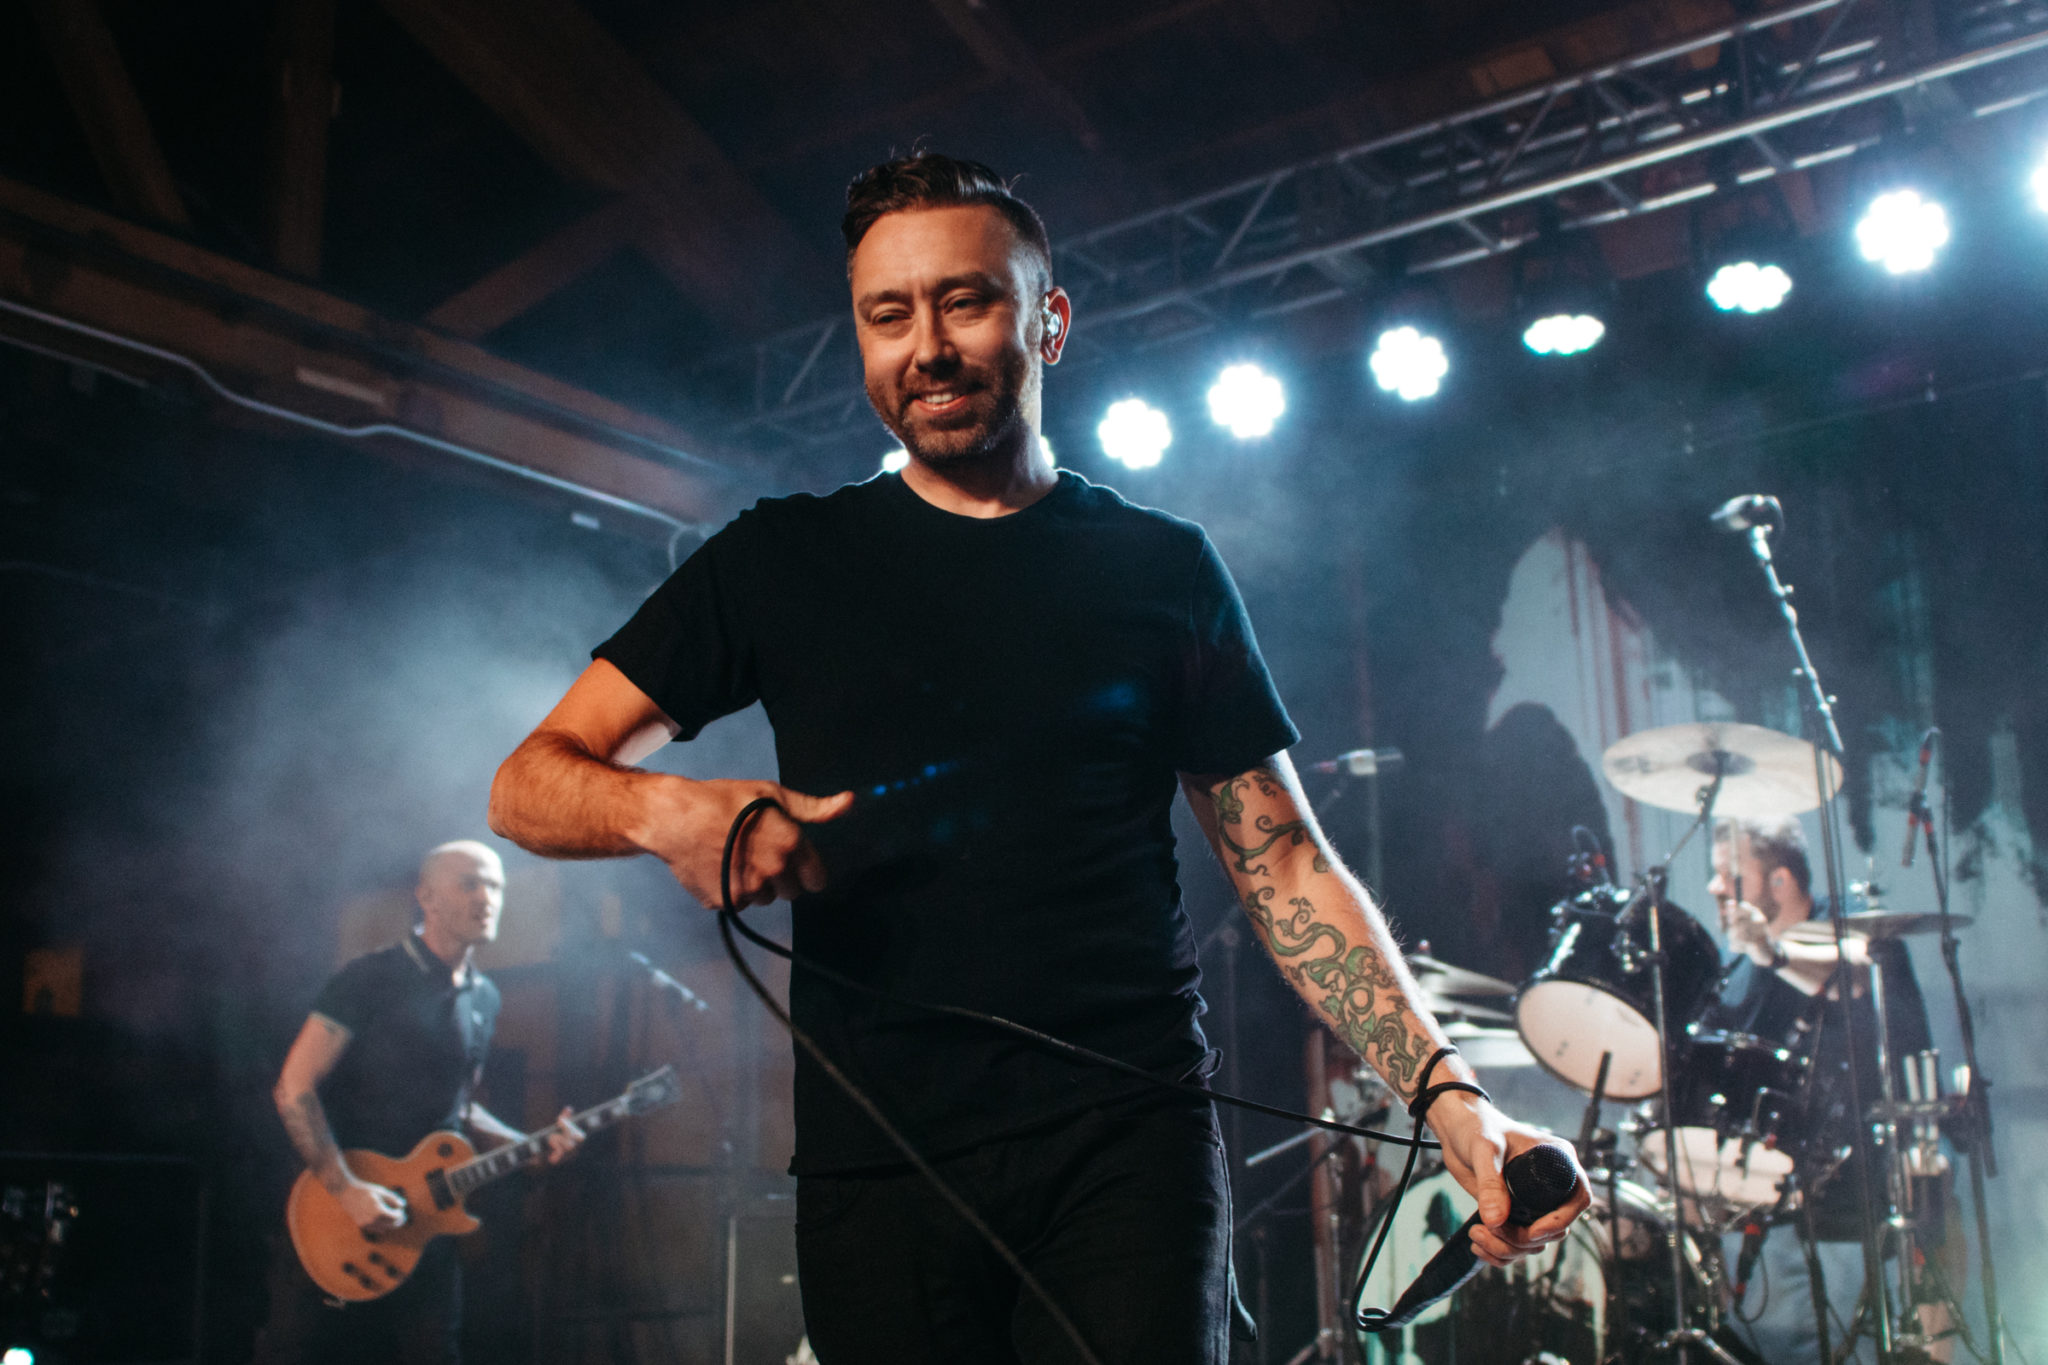 PHOTOS: Rise Against play intimate show at House of Vans in Chicago